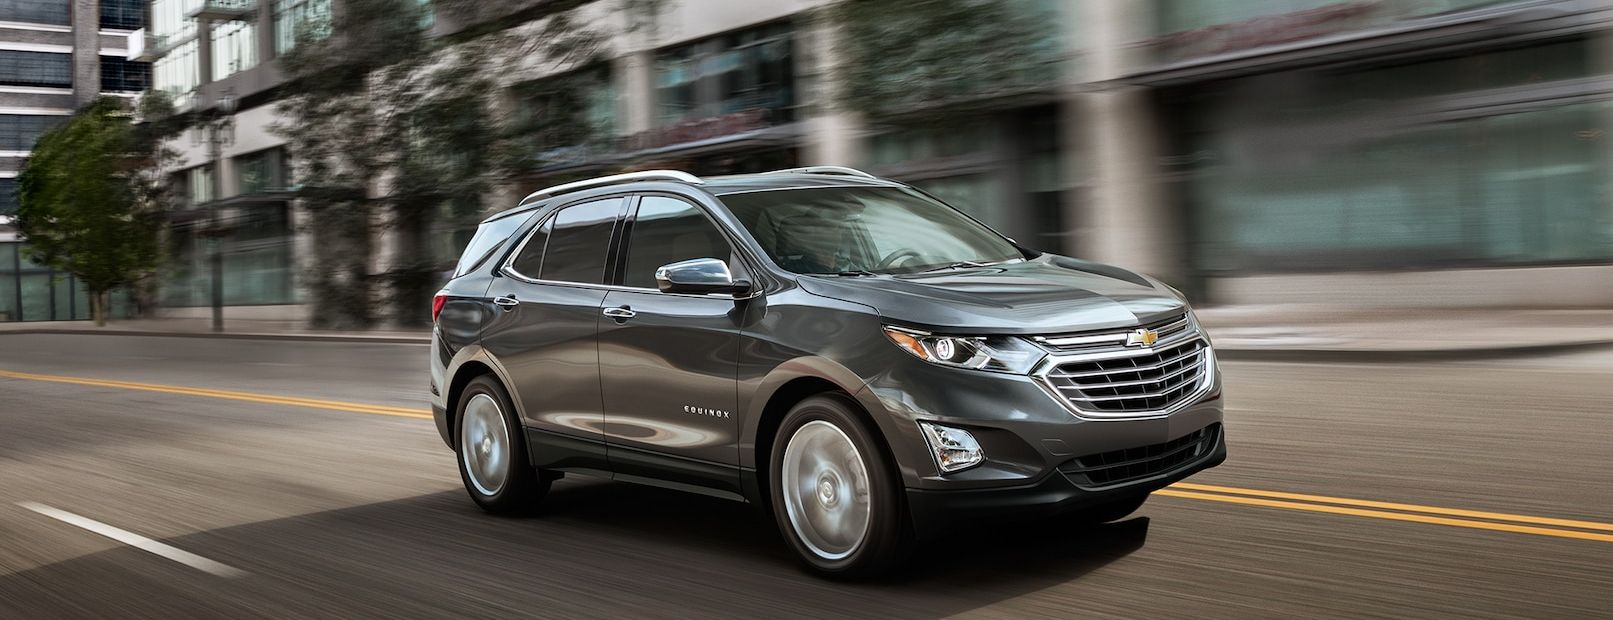 2018 Chevrolet Equinox for Sale near Lansing, MI - Sundance ... on